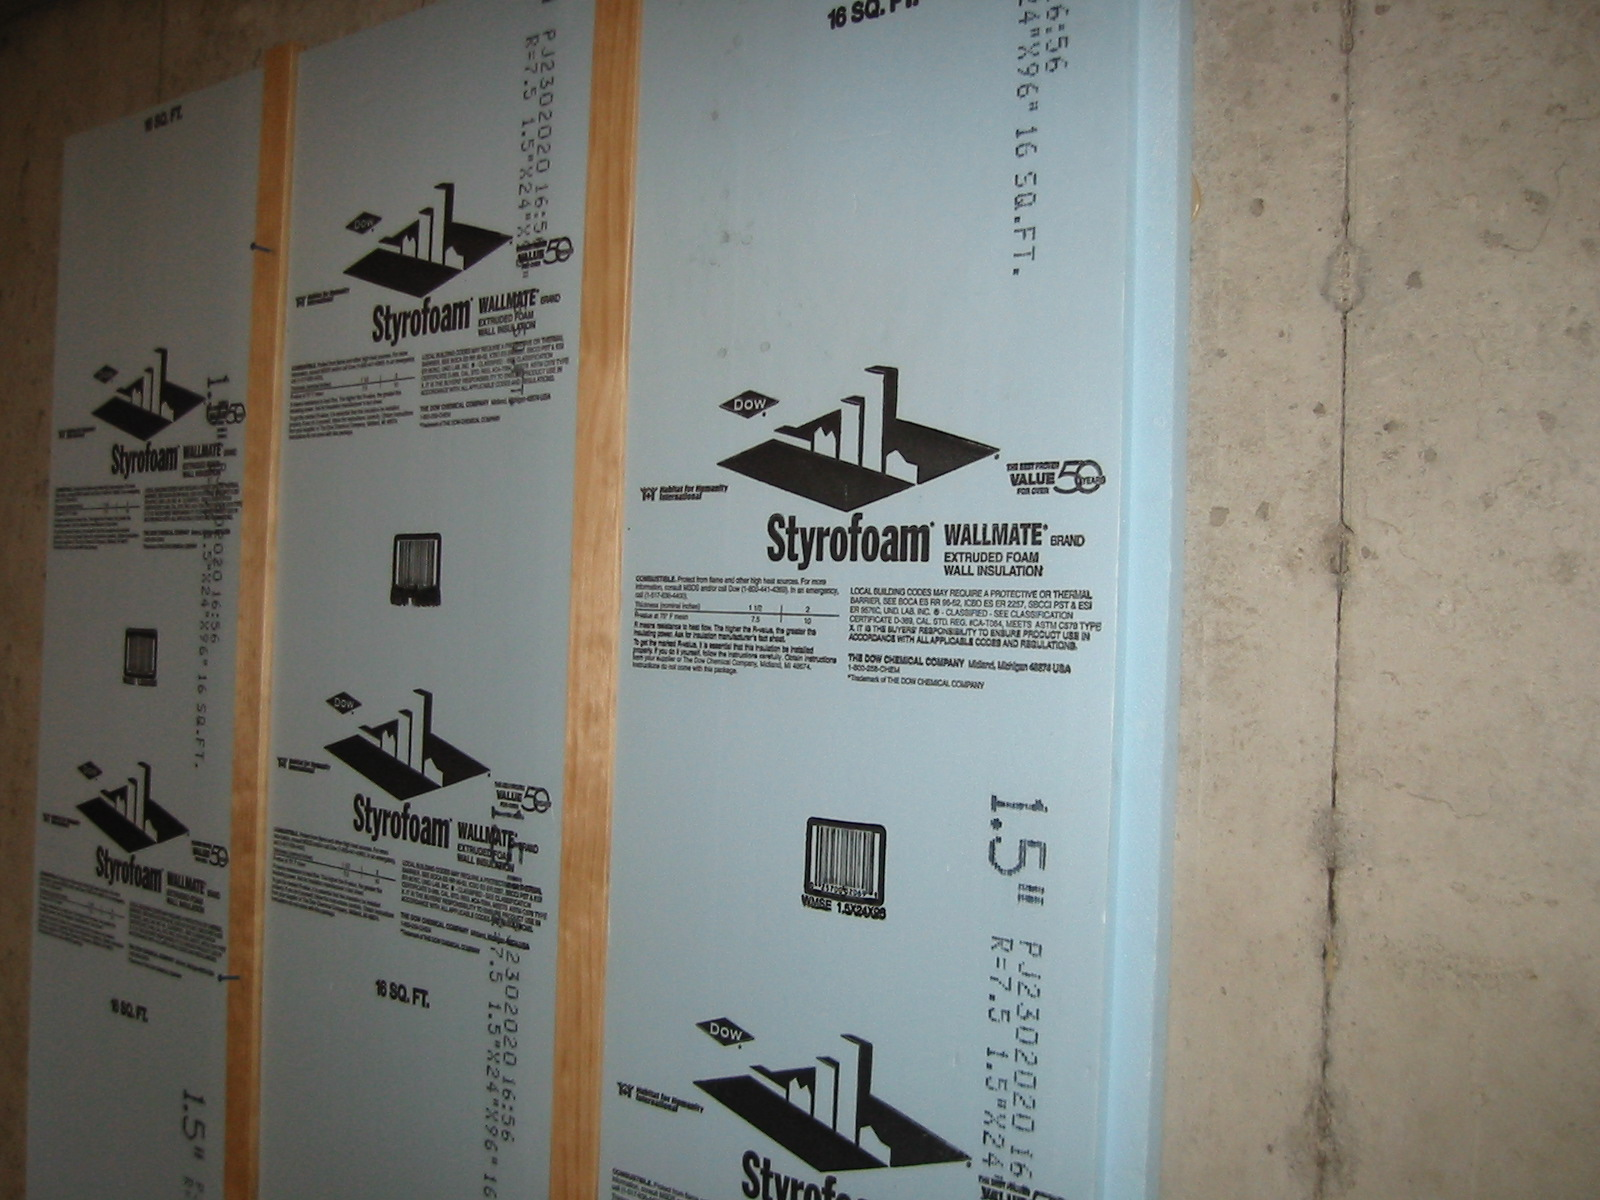 Rigid foam insulation is installed directly in contact with the below-grade basement wall. This stops water vapor from passing into the home and also keeps warm and moist interior air from condensing on the cold walls